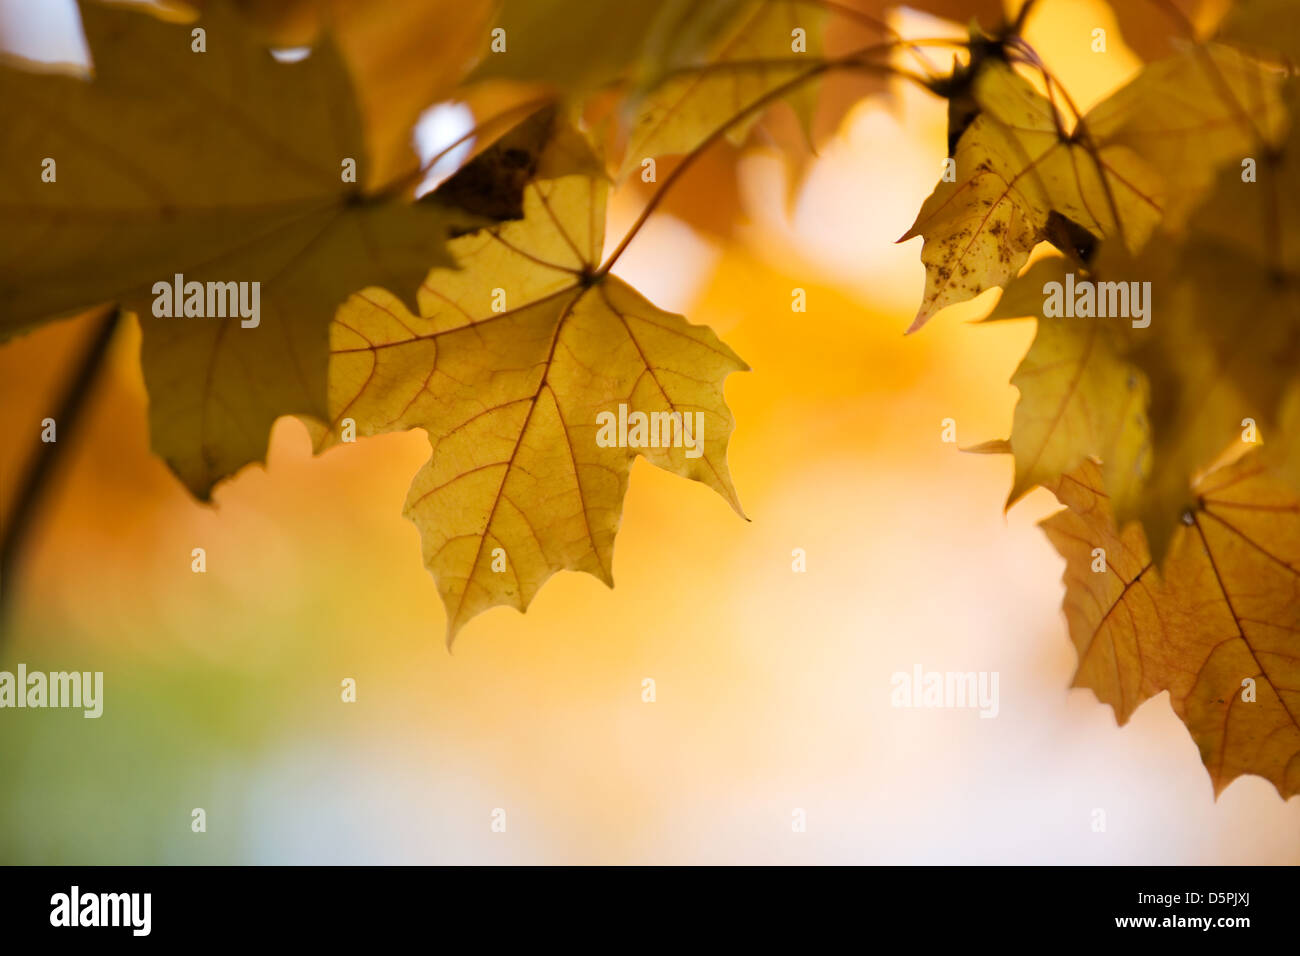 Maple tree in beautiful autumn colors - Stock Image